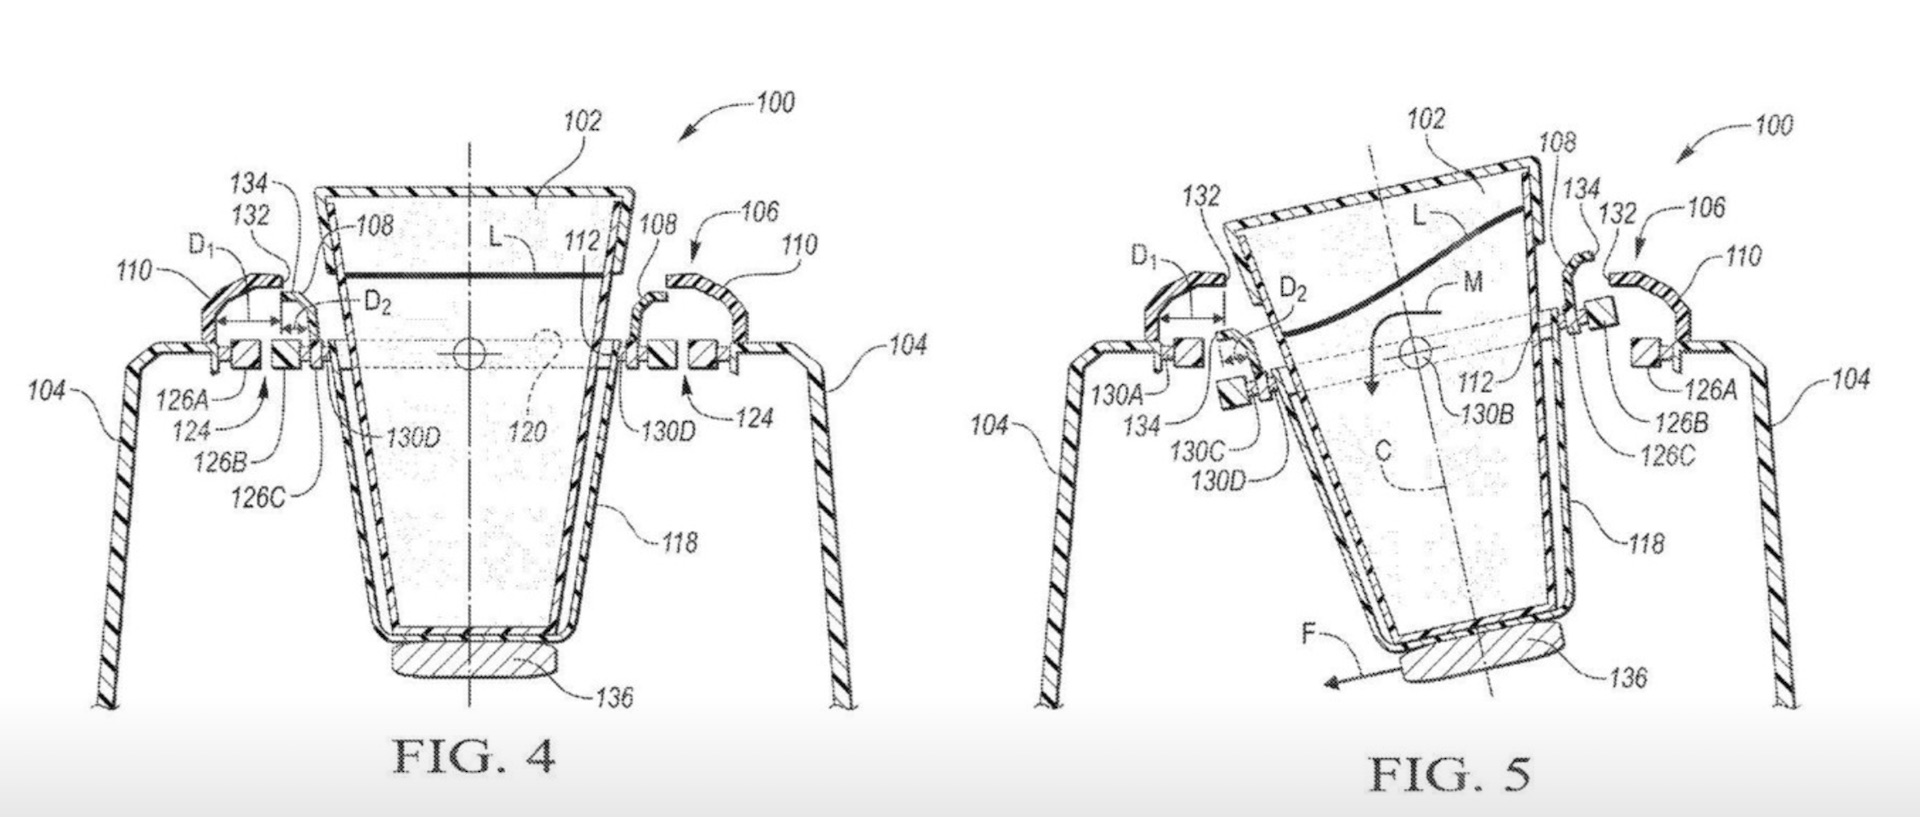 Ford patent shows self-leveling cupholder--no more spills